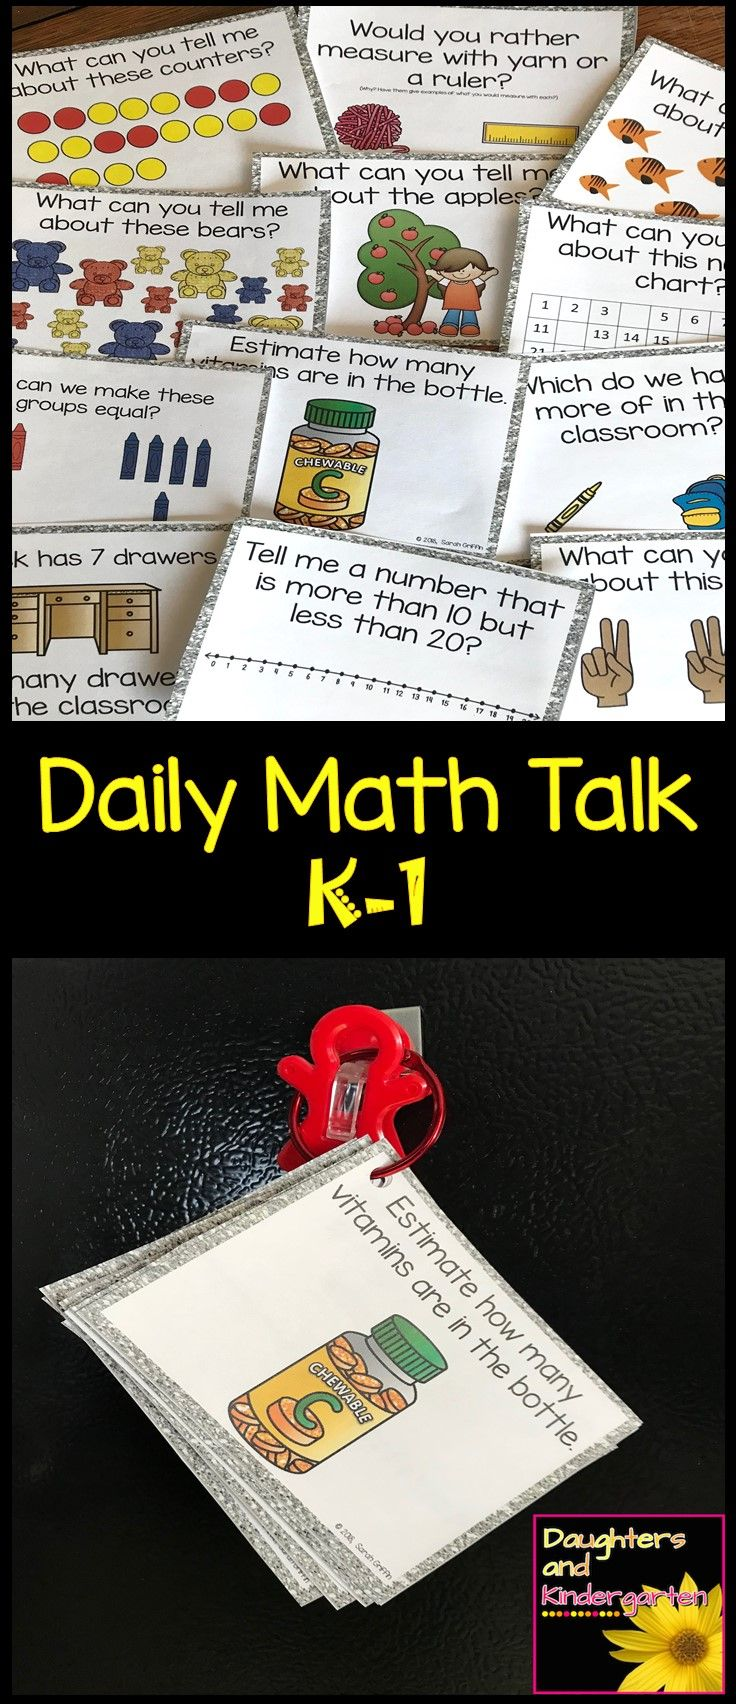 Daily Math Talk Cards for Kindergarten and 1st Grade.